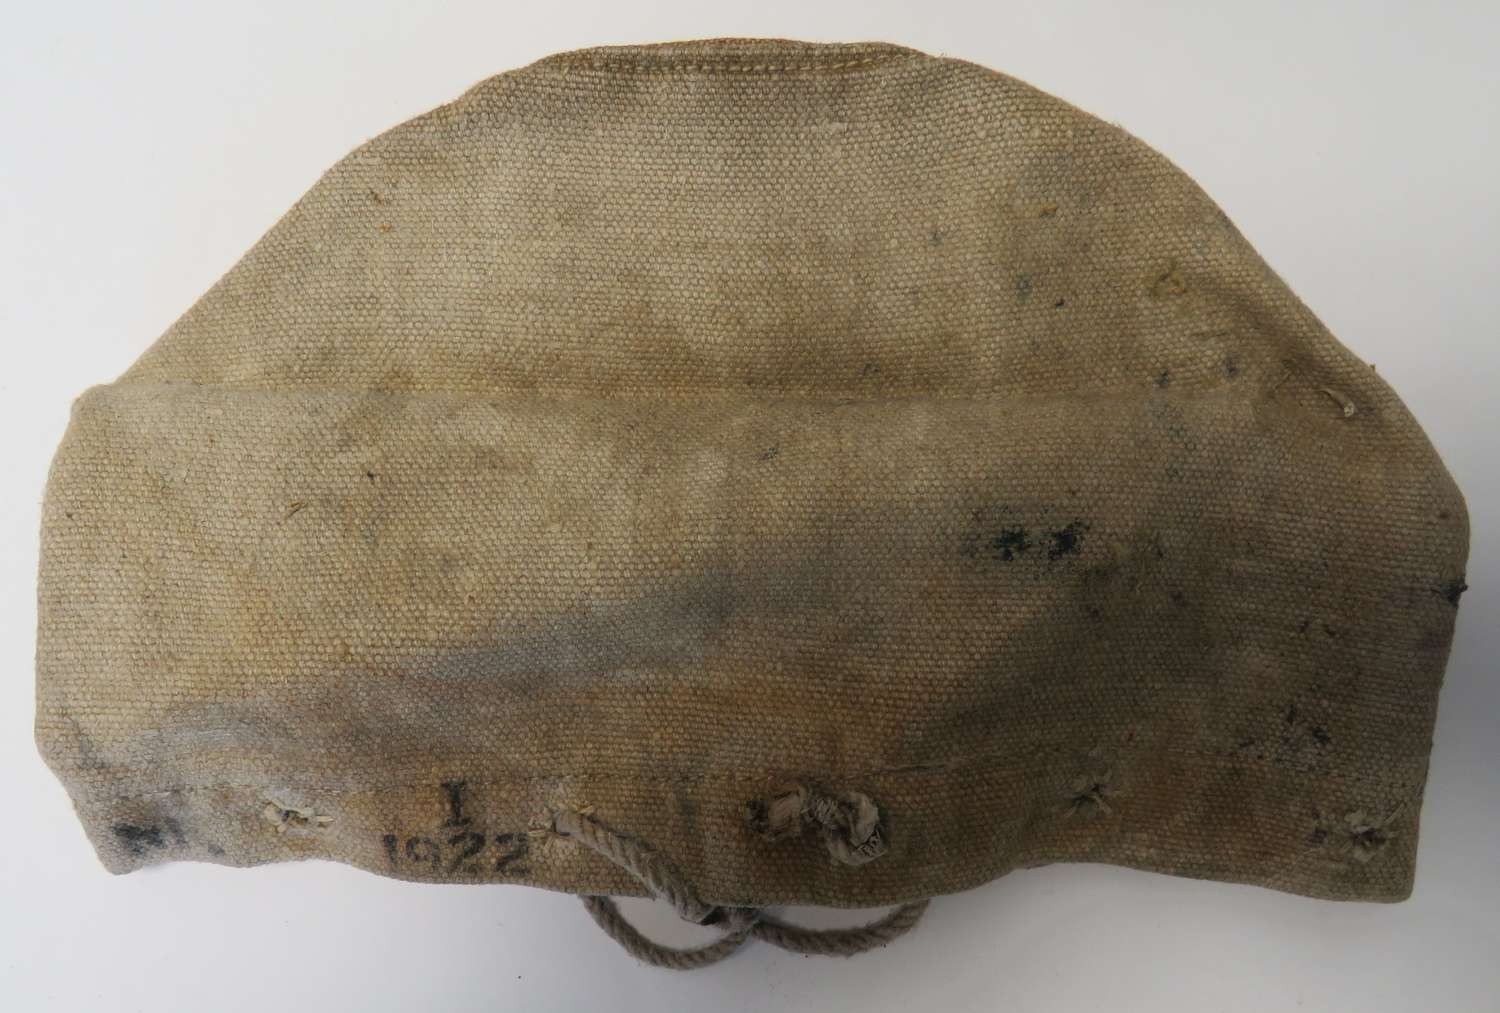 1922 Dated Canvas Muzzle Cover